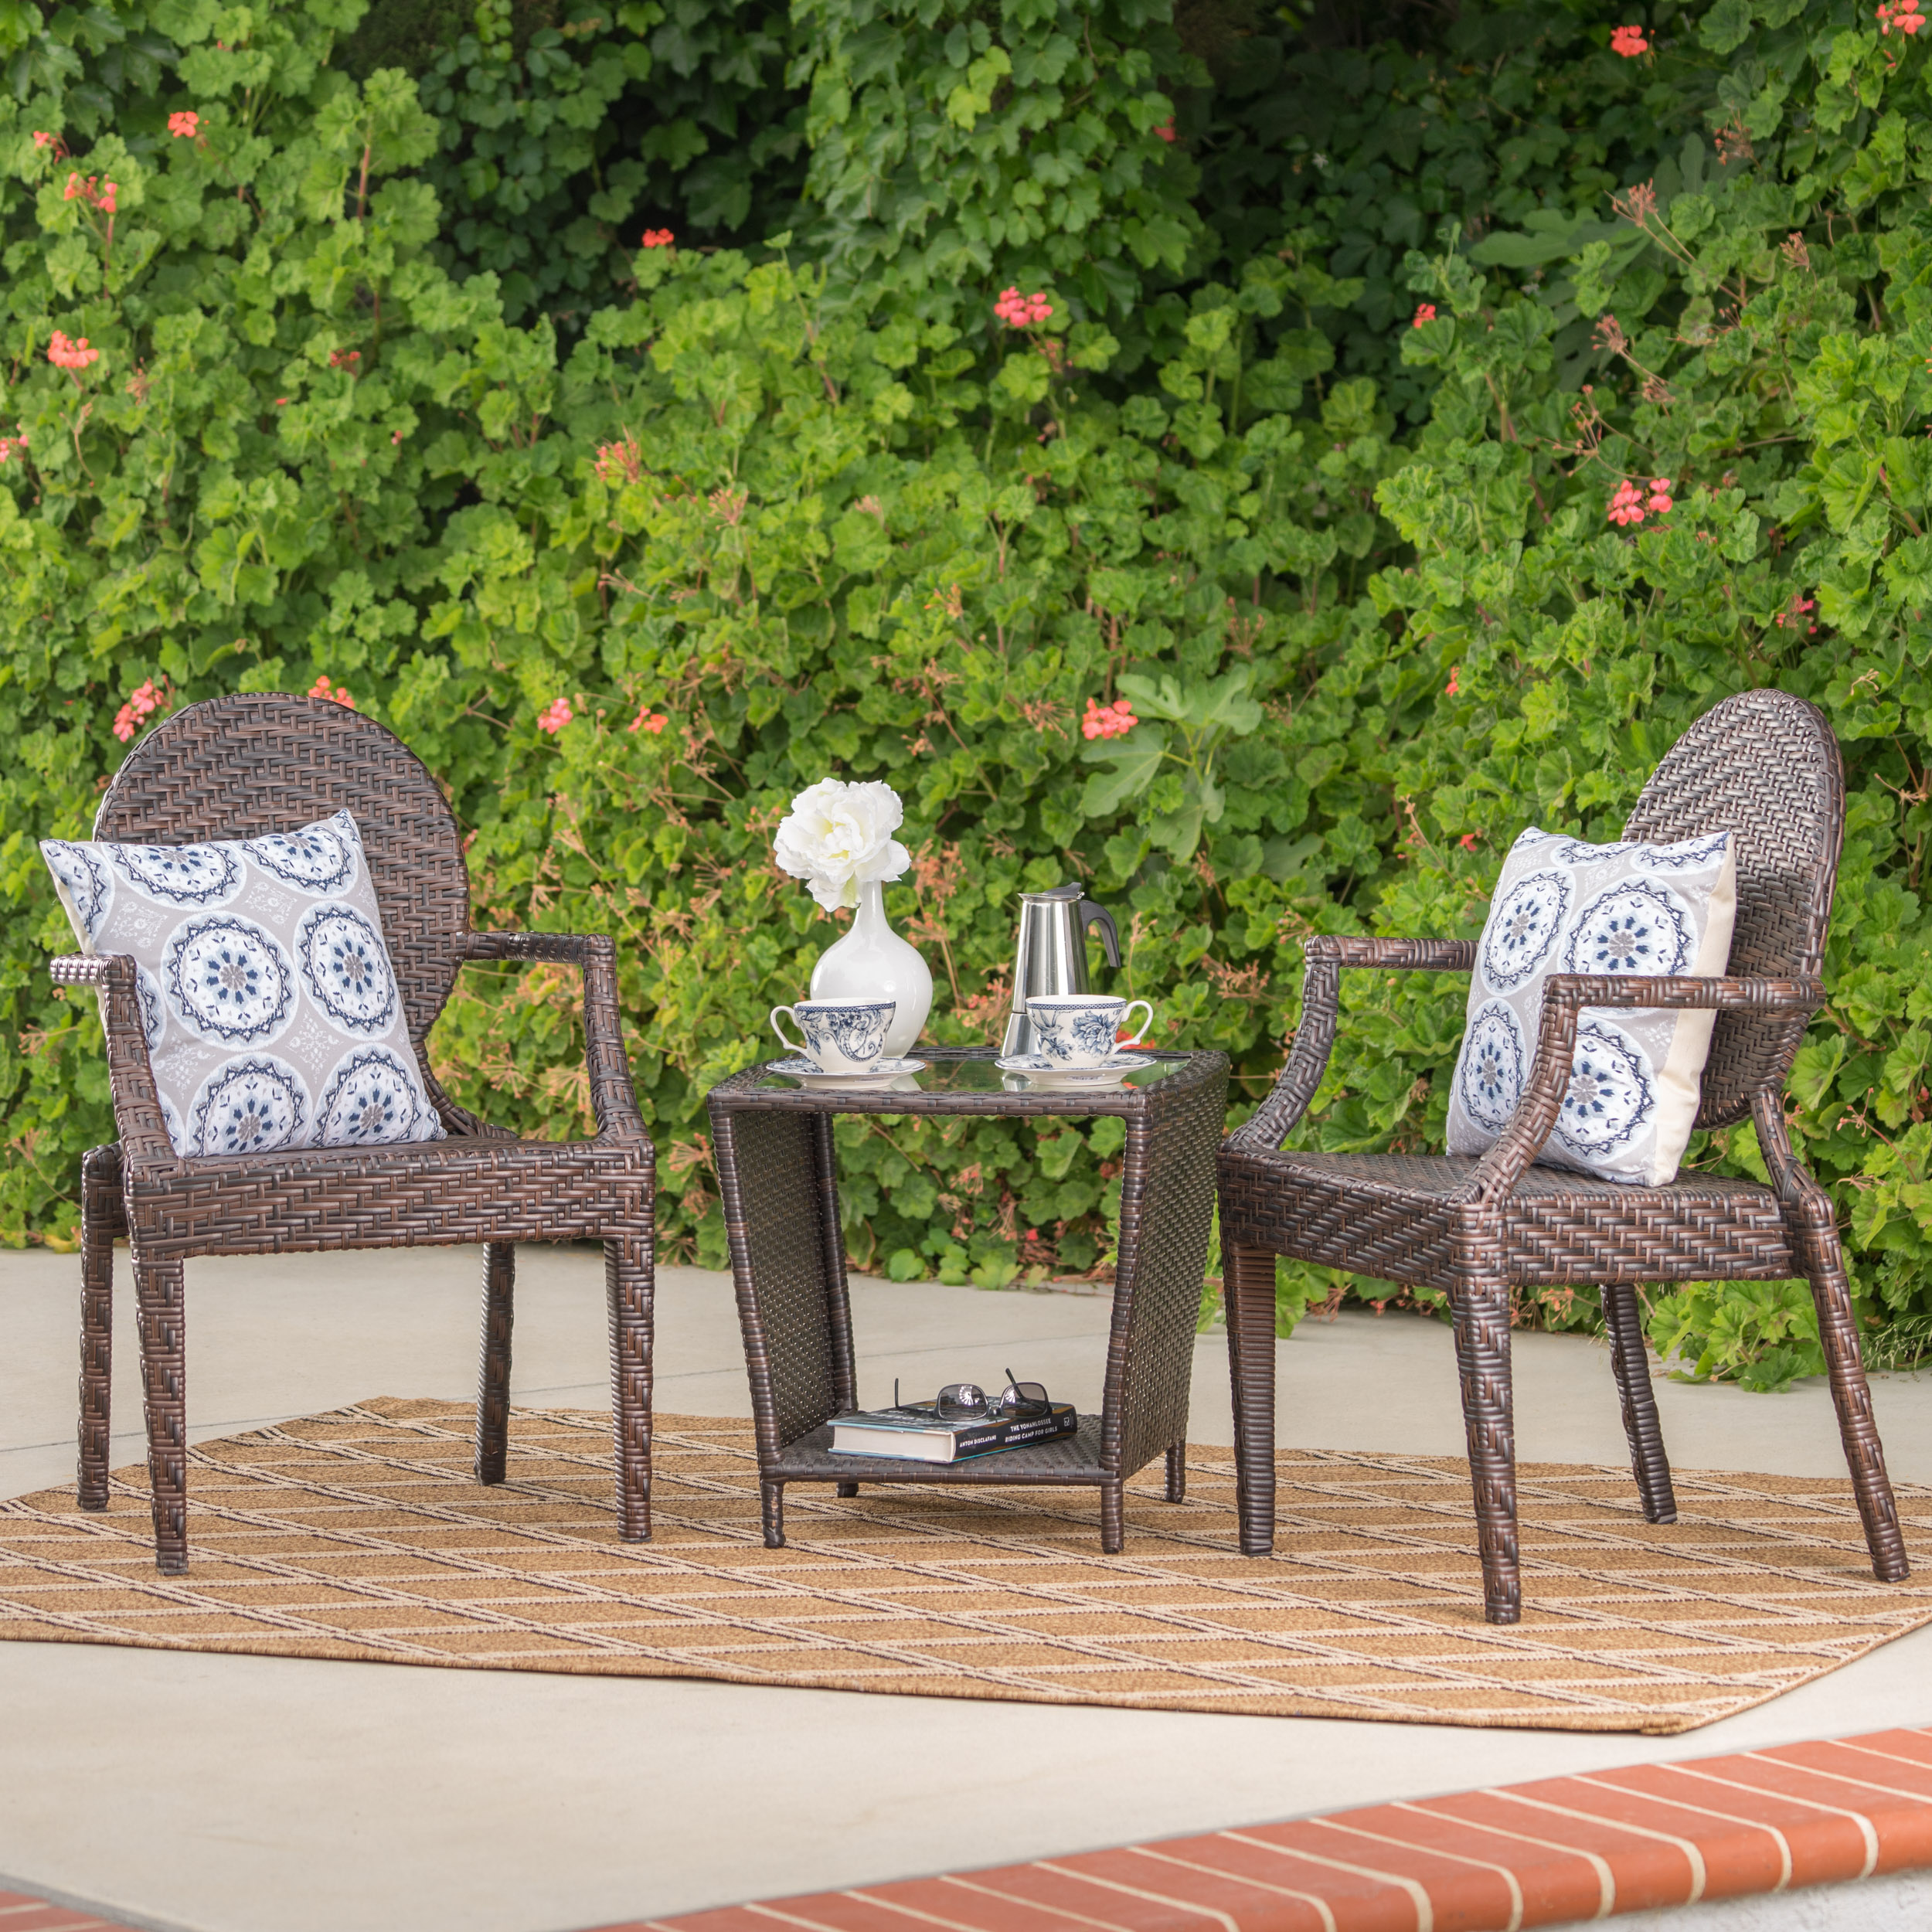 Pembrooke Outdoor 3 Piece Wicker Stacking Chair Chat Set, Multibrown